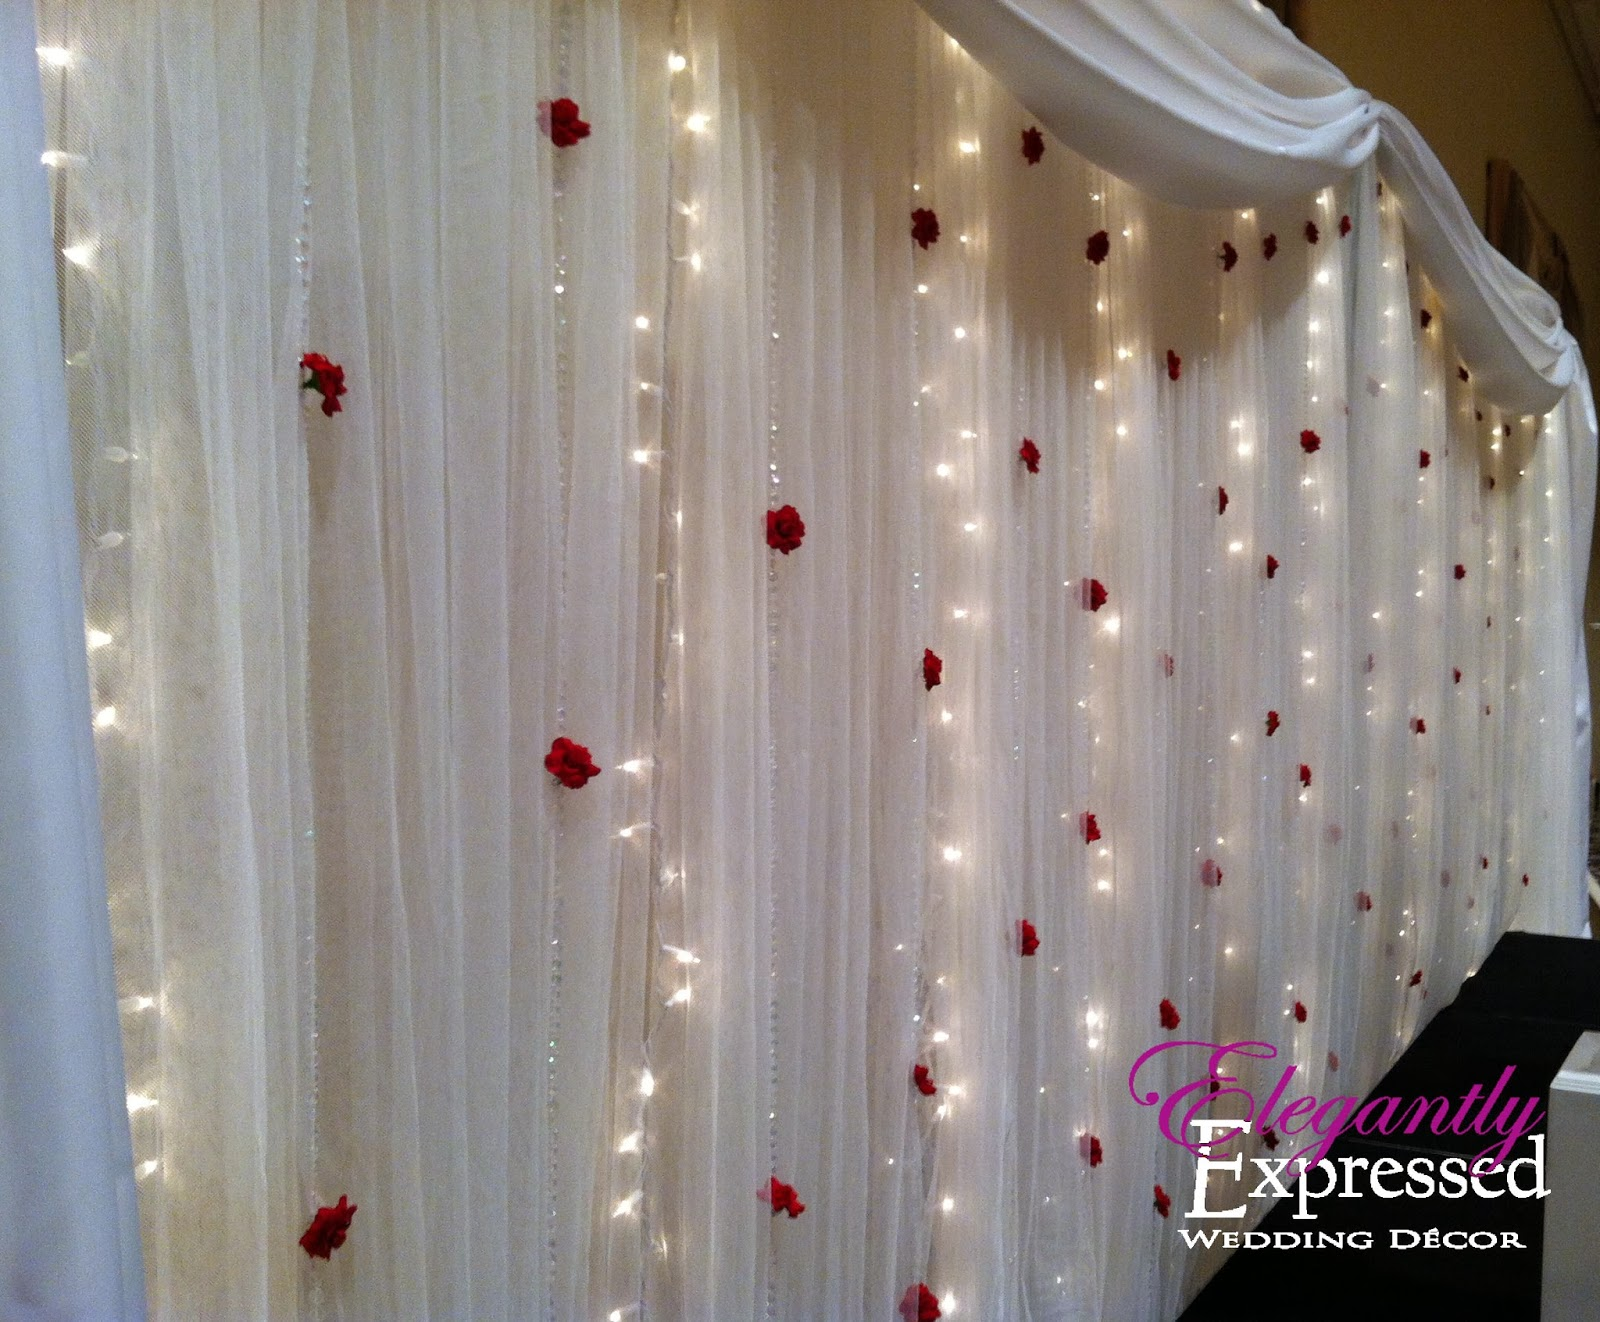 String Lights Backdrop : Elegantly Expressed Wedding Decor: February 2014